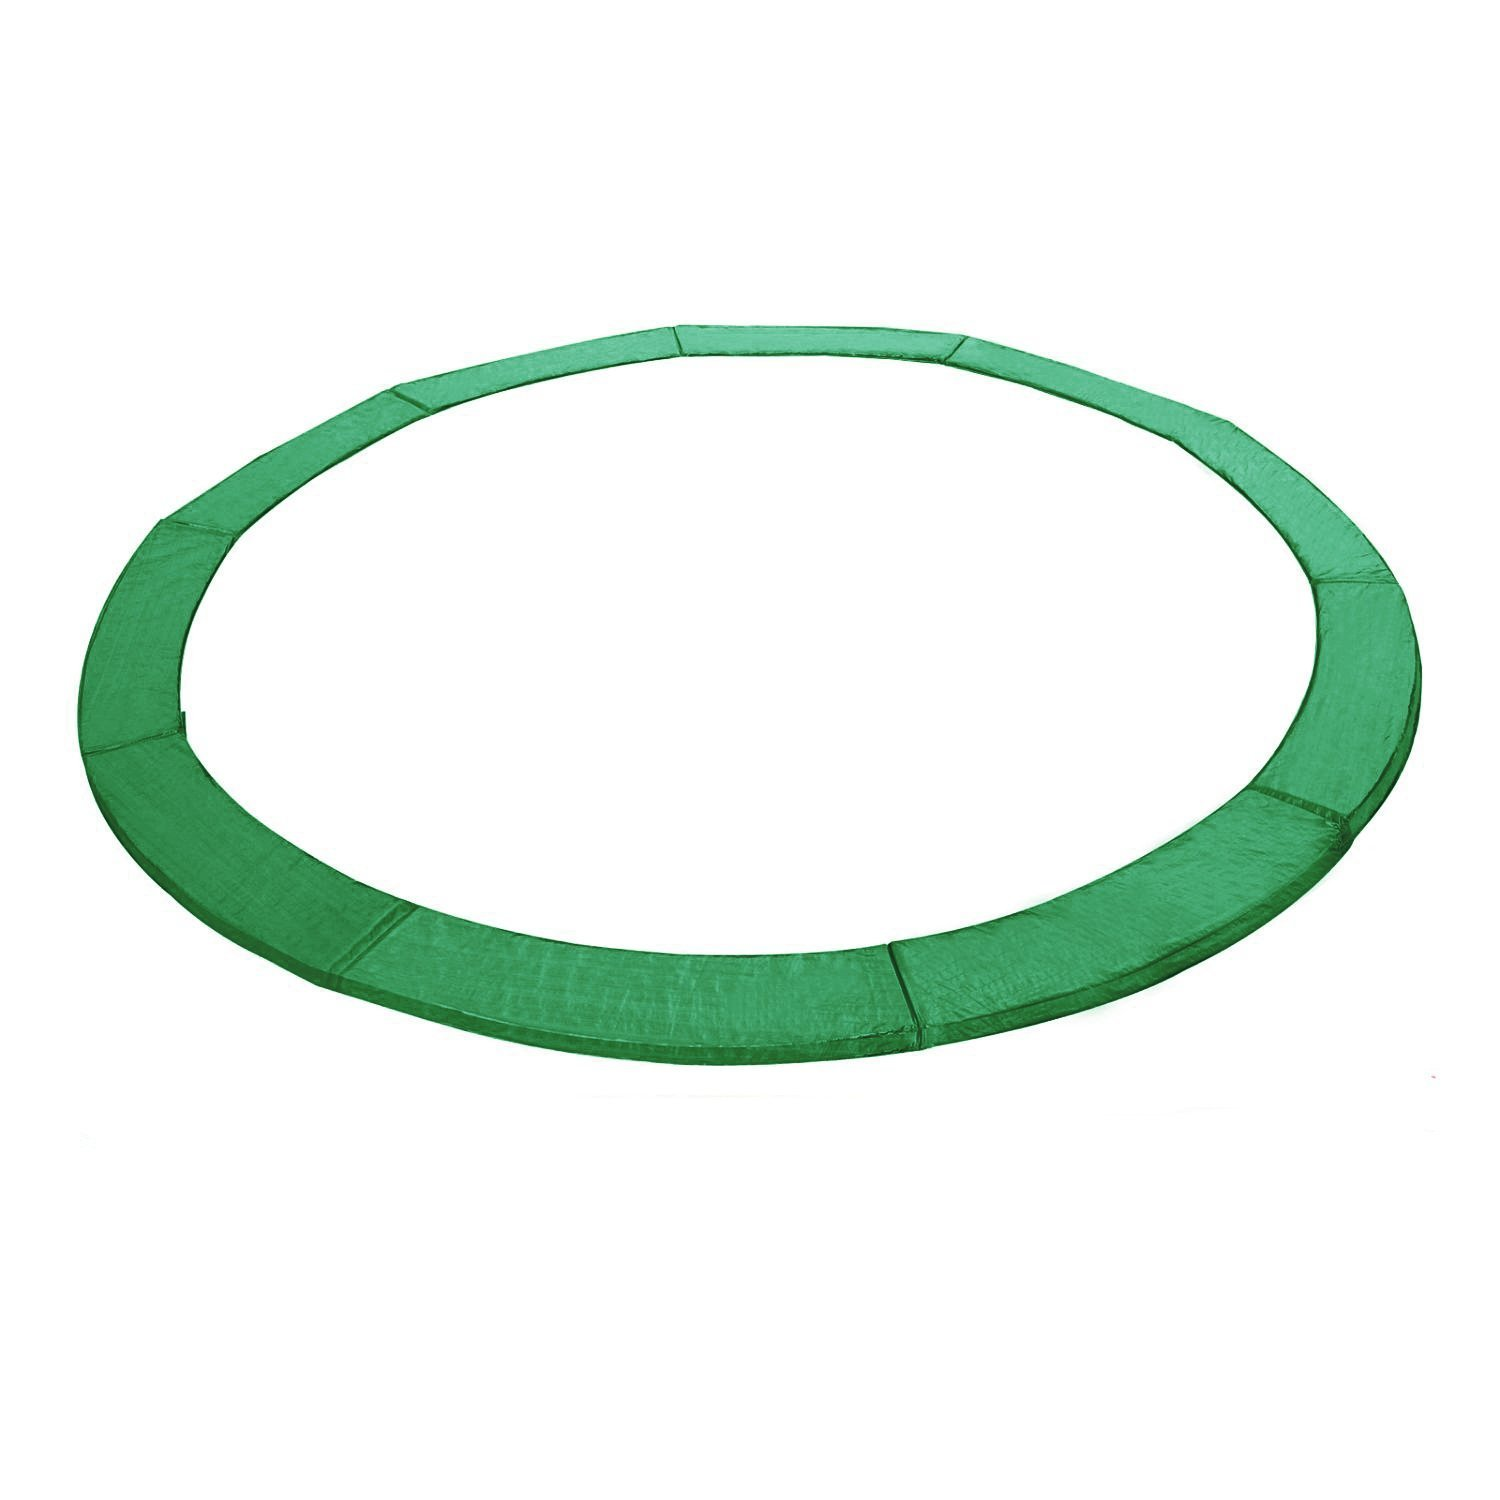 Exacme 16 Feet Trampoline Replacement Safety Spring Cover Round Frame Pad Without Holes, Green by Exacme